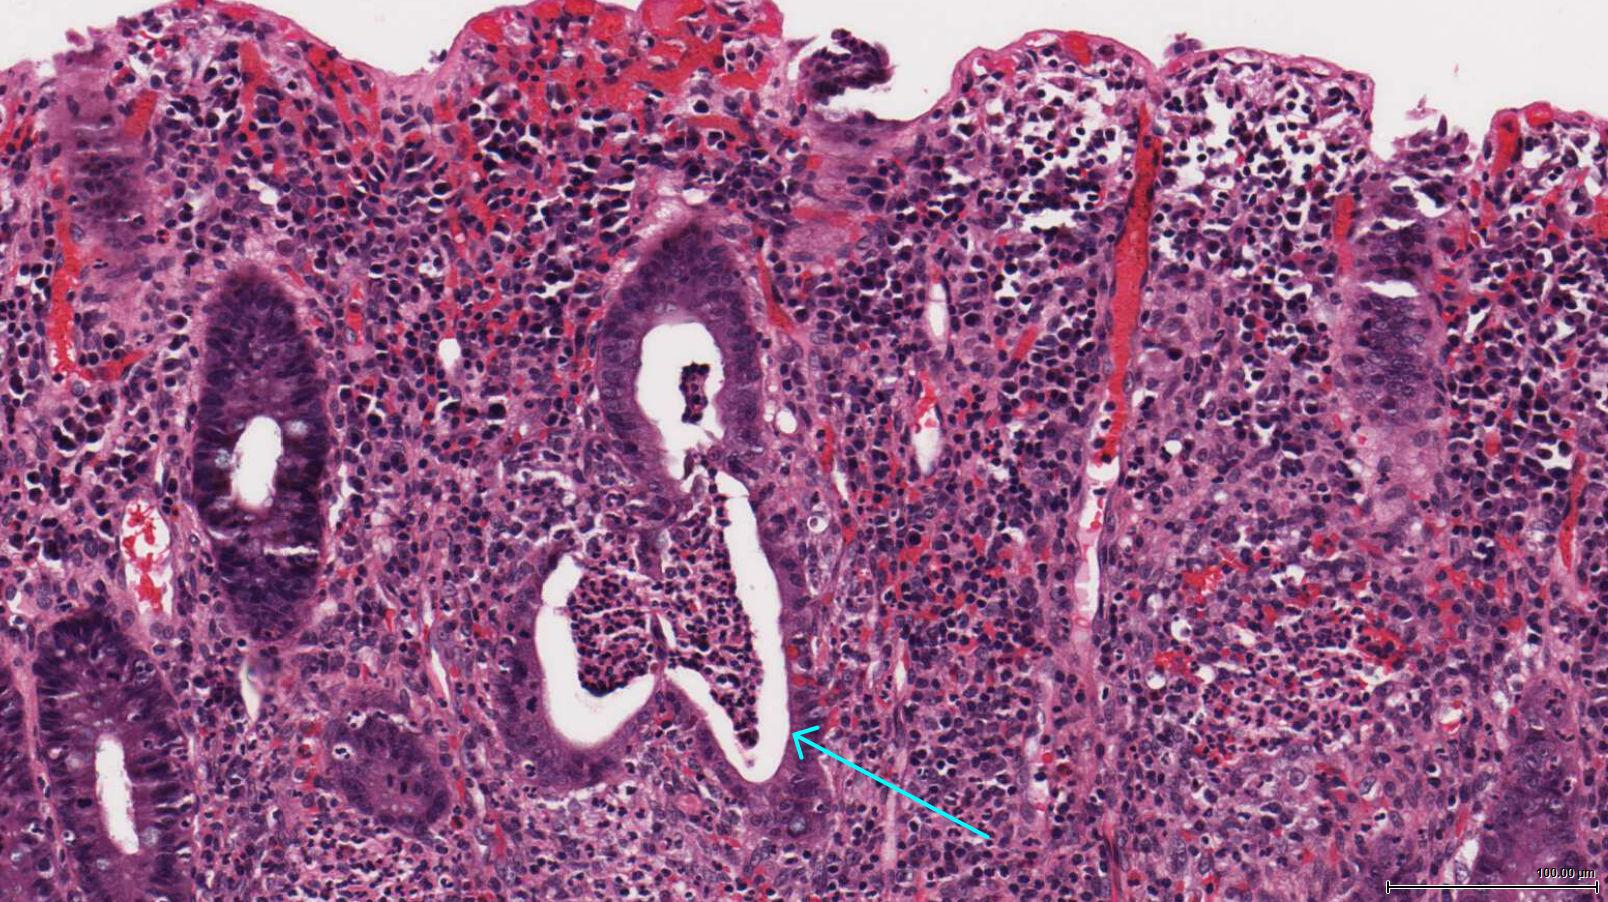 Histological appearance of ulcerative colitis. Blue arrow points to a crypt abscess (source)